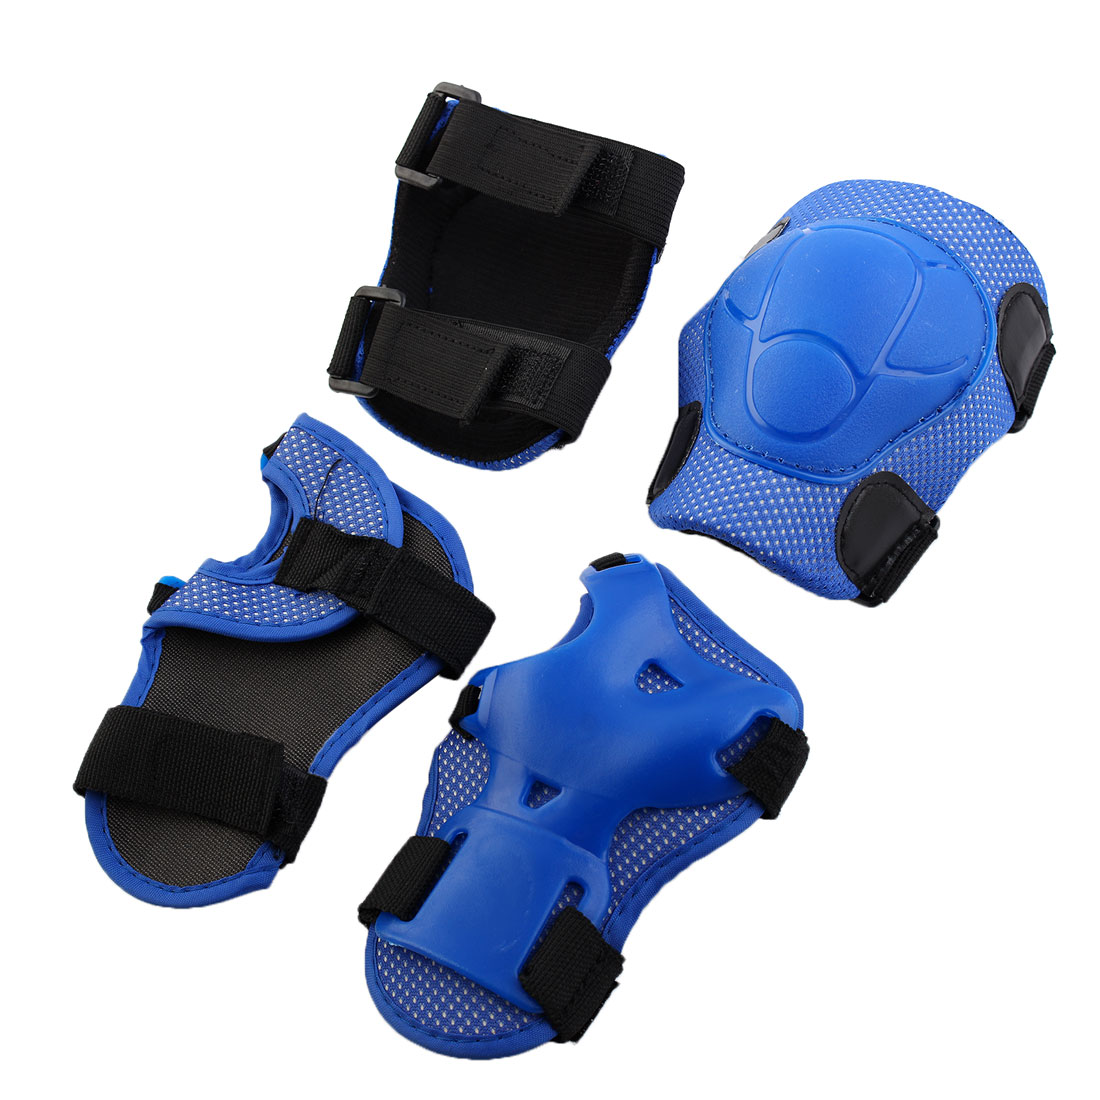 Blue Children Knee and Elbow Pad for Cycling Roller Skating